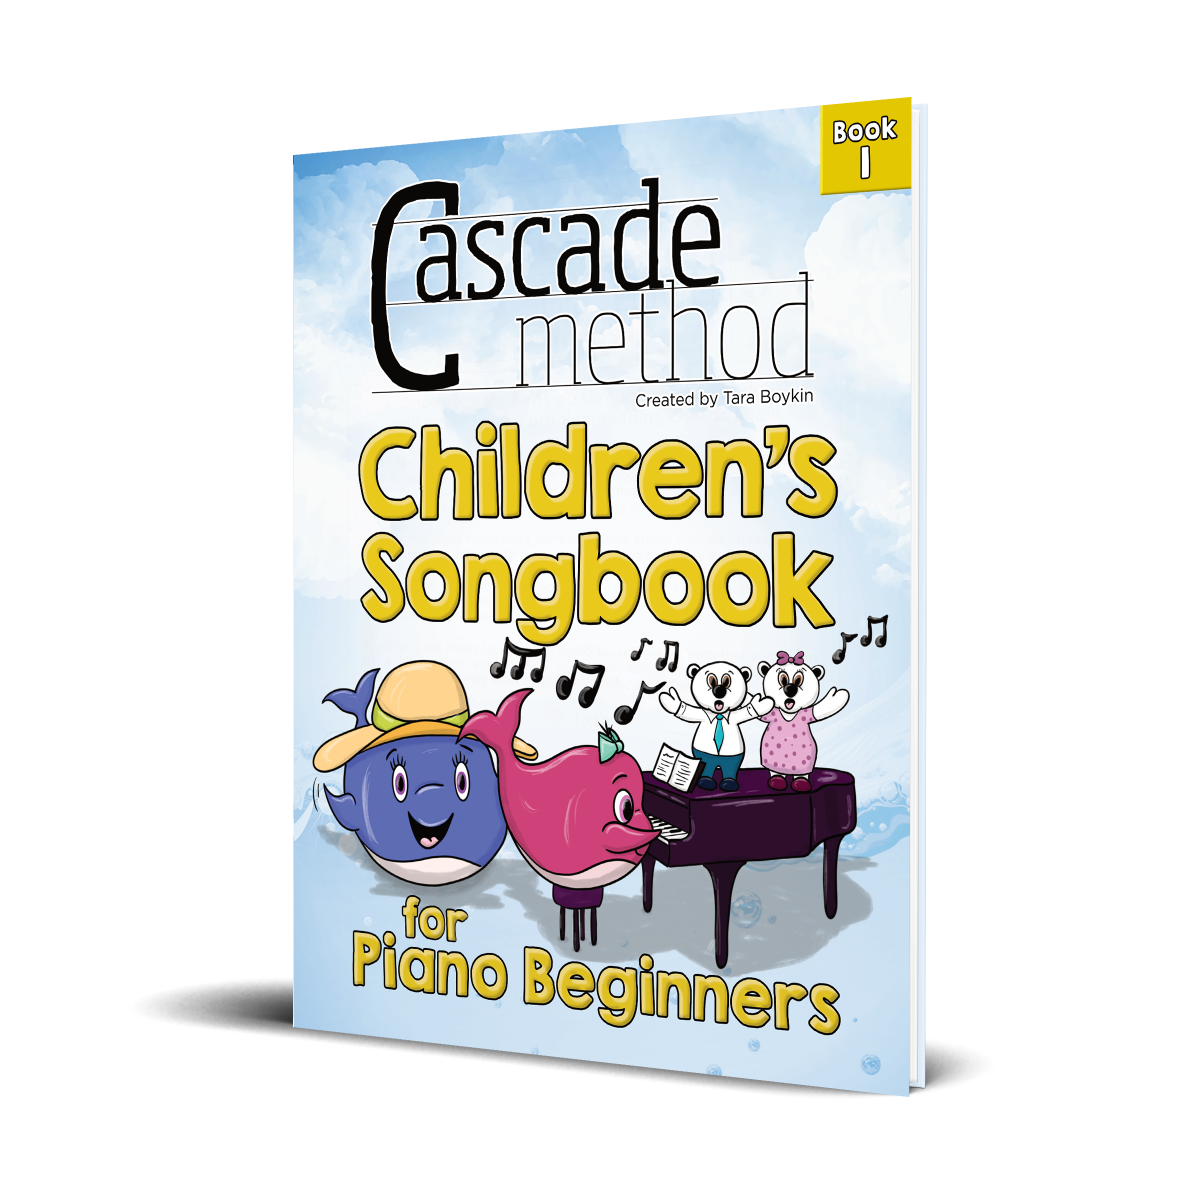 Children's Songbook for Piano Beginners Book 1